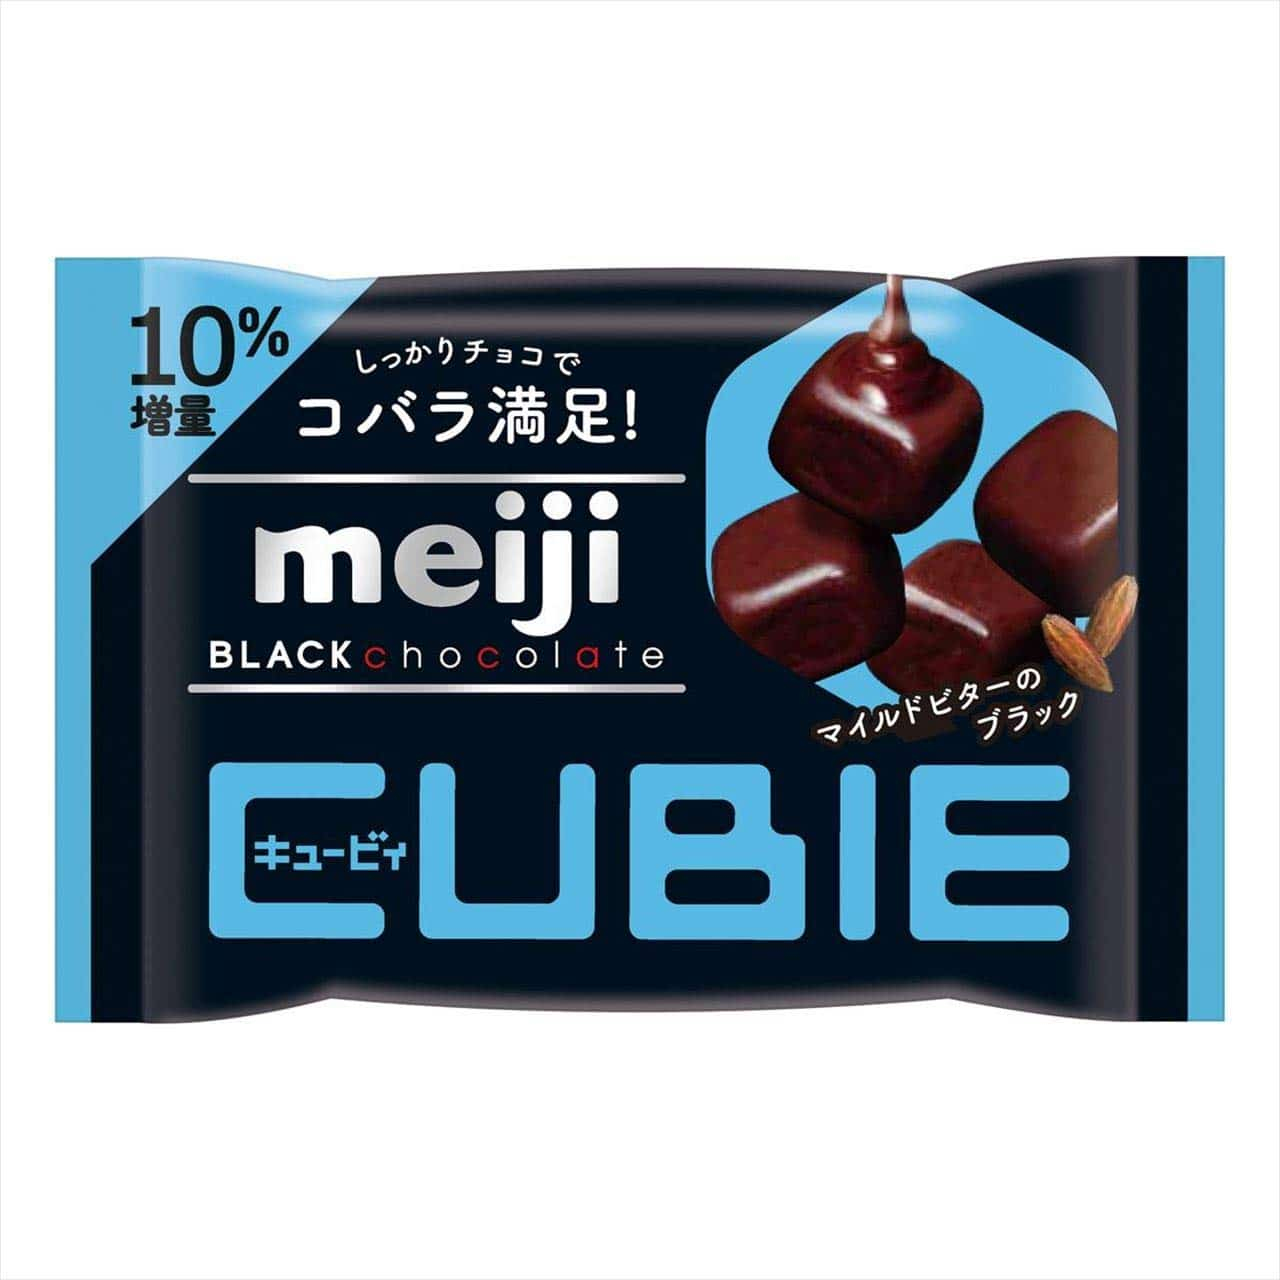 Meiji Cubie Black Chocolate